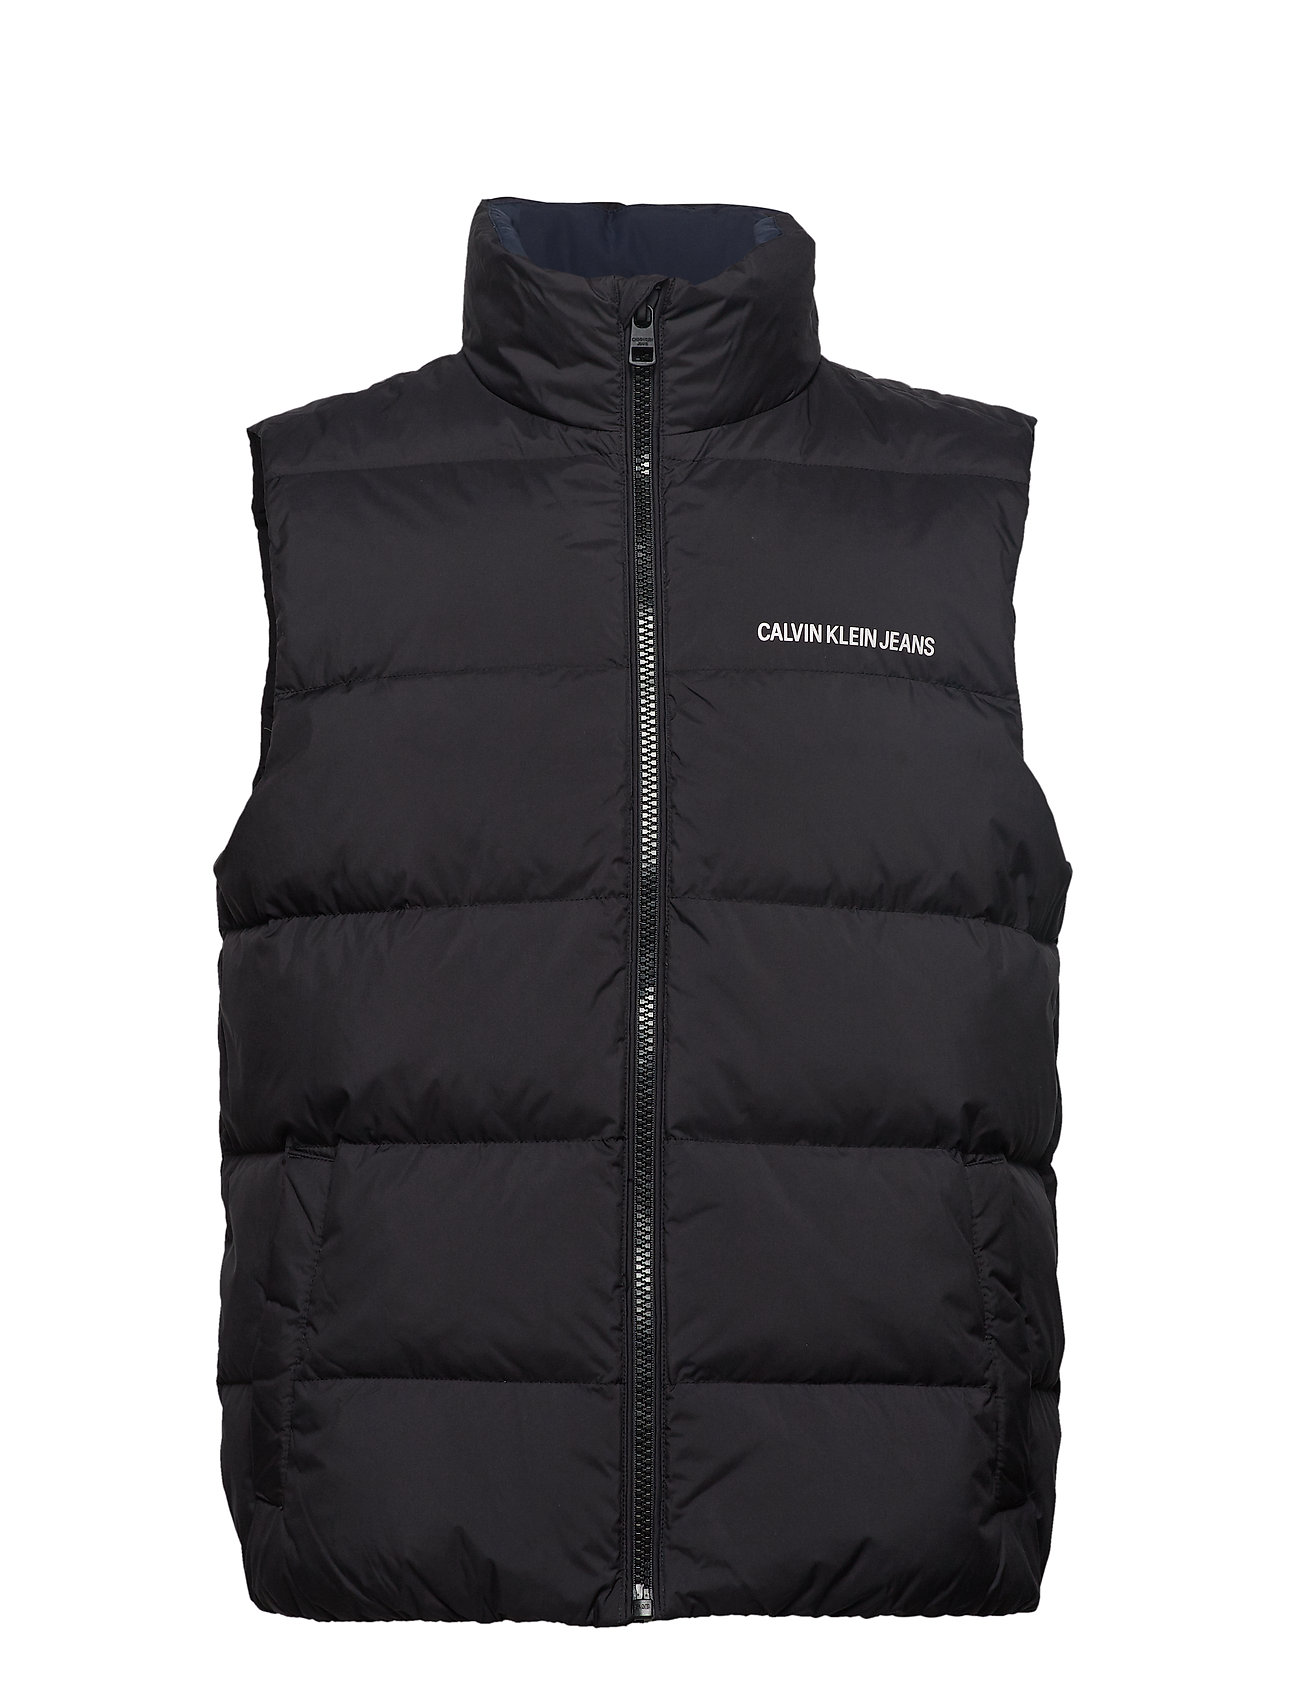 Calvin Klein Jeans DOWN VEST - BLACK BEAUTY